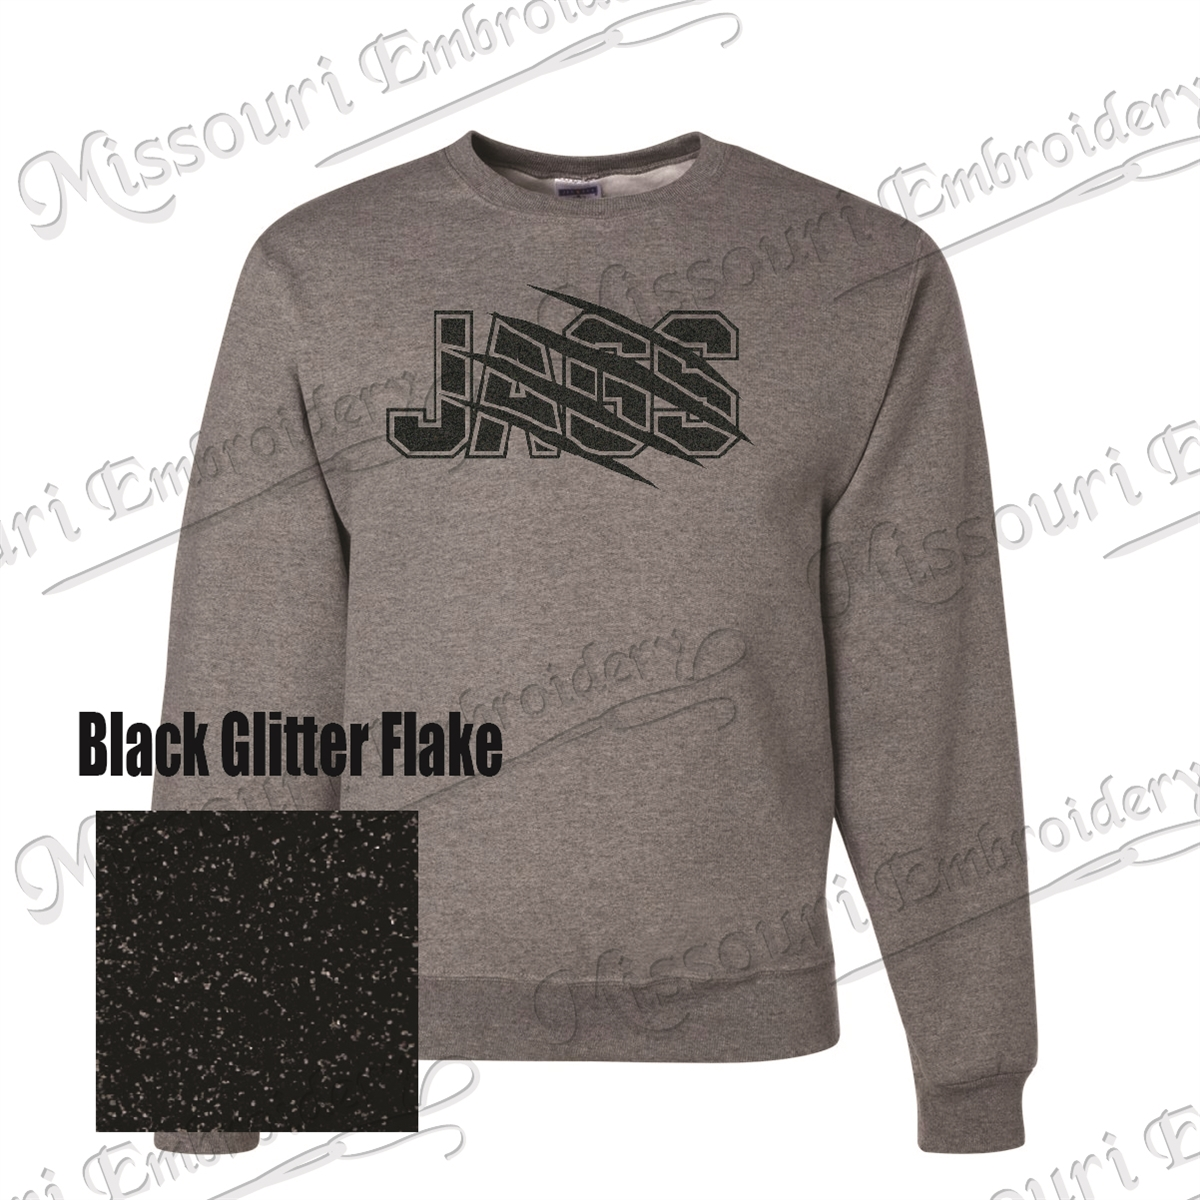 e1e4c0d8f83b JAGS SWEATSHIRT Black Glitter Design (BLING) · Larger Photo